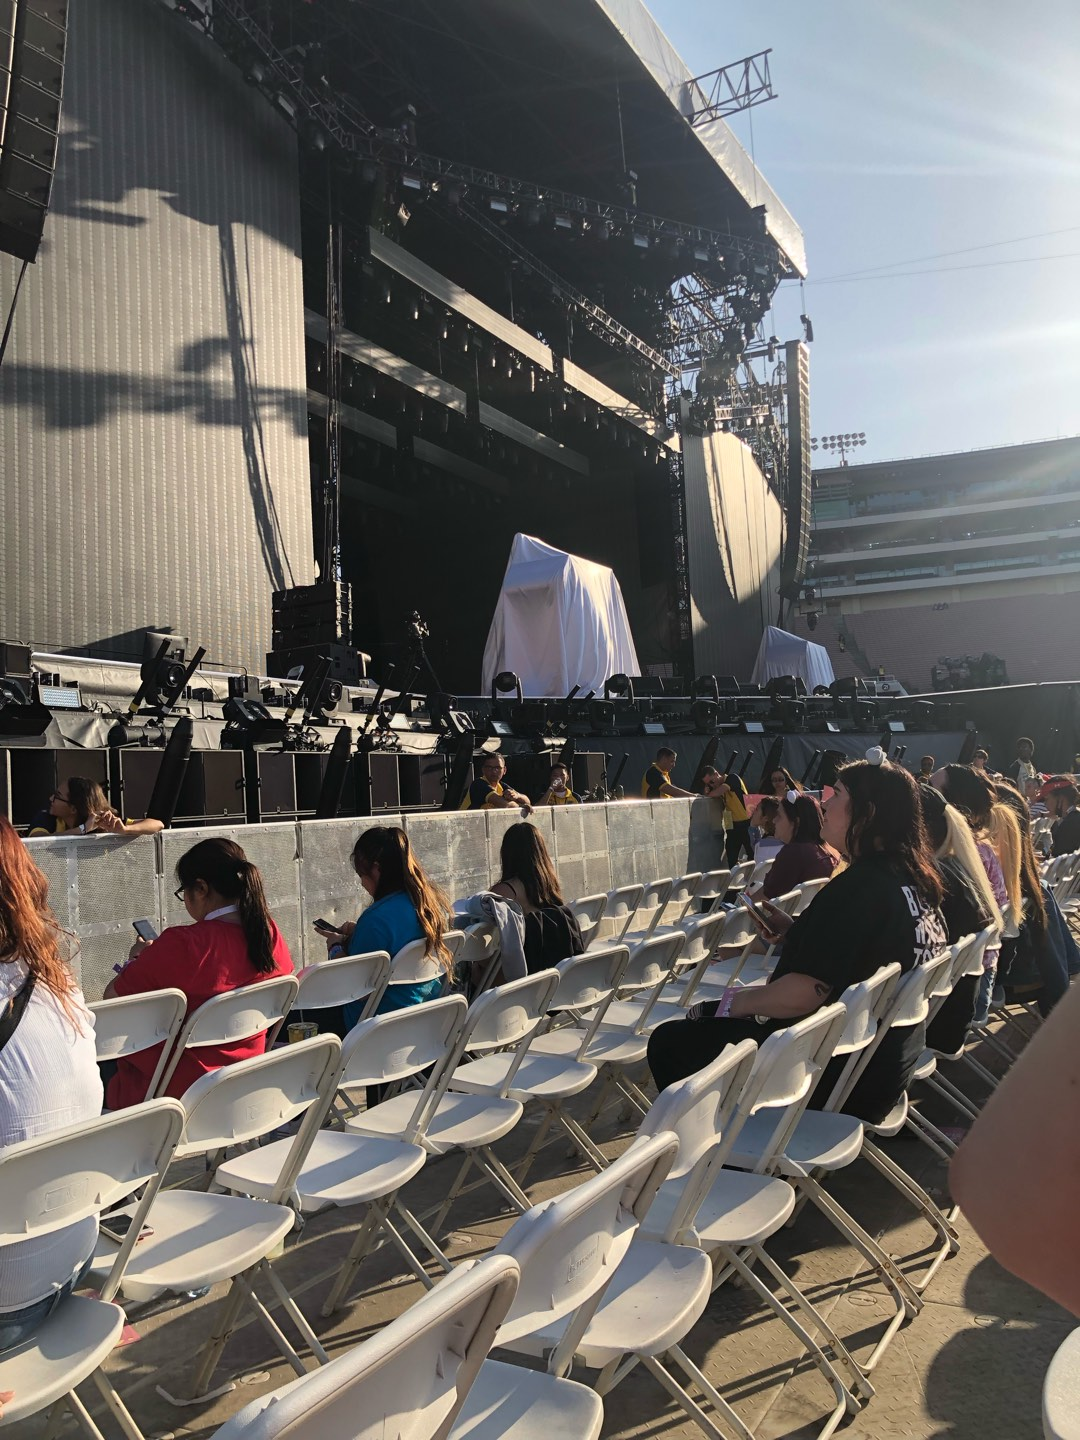 Rose Bowl Section A5 Floor Row 4 Seat 34